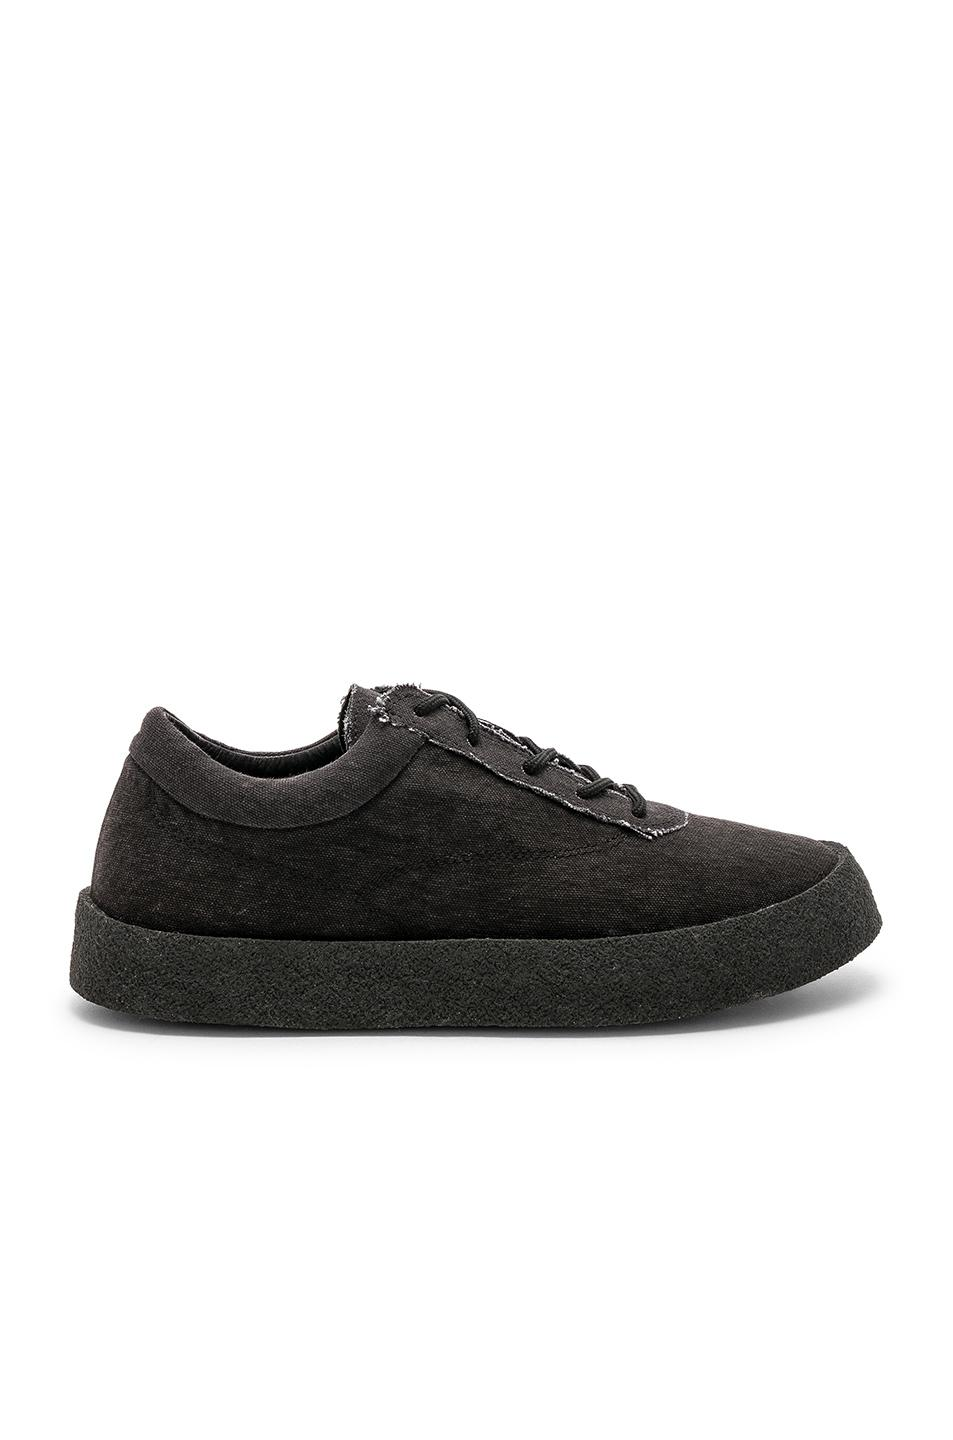 dbd2ad4fe59 Lyst - Yeezy Washed Canvas Crepe Sneakers in Black